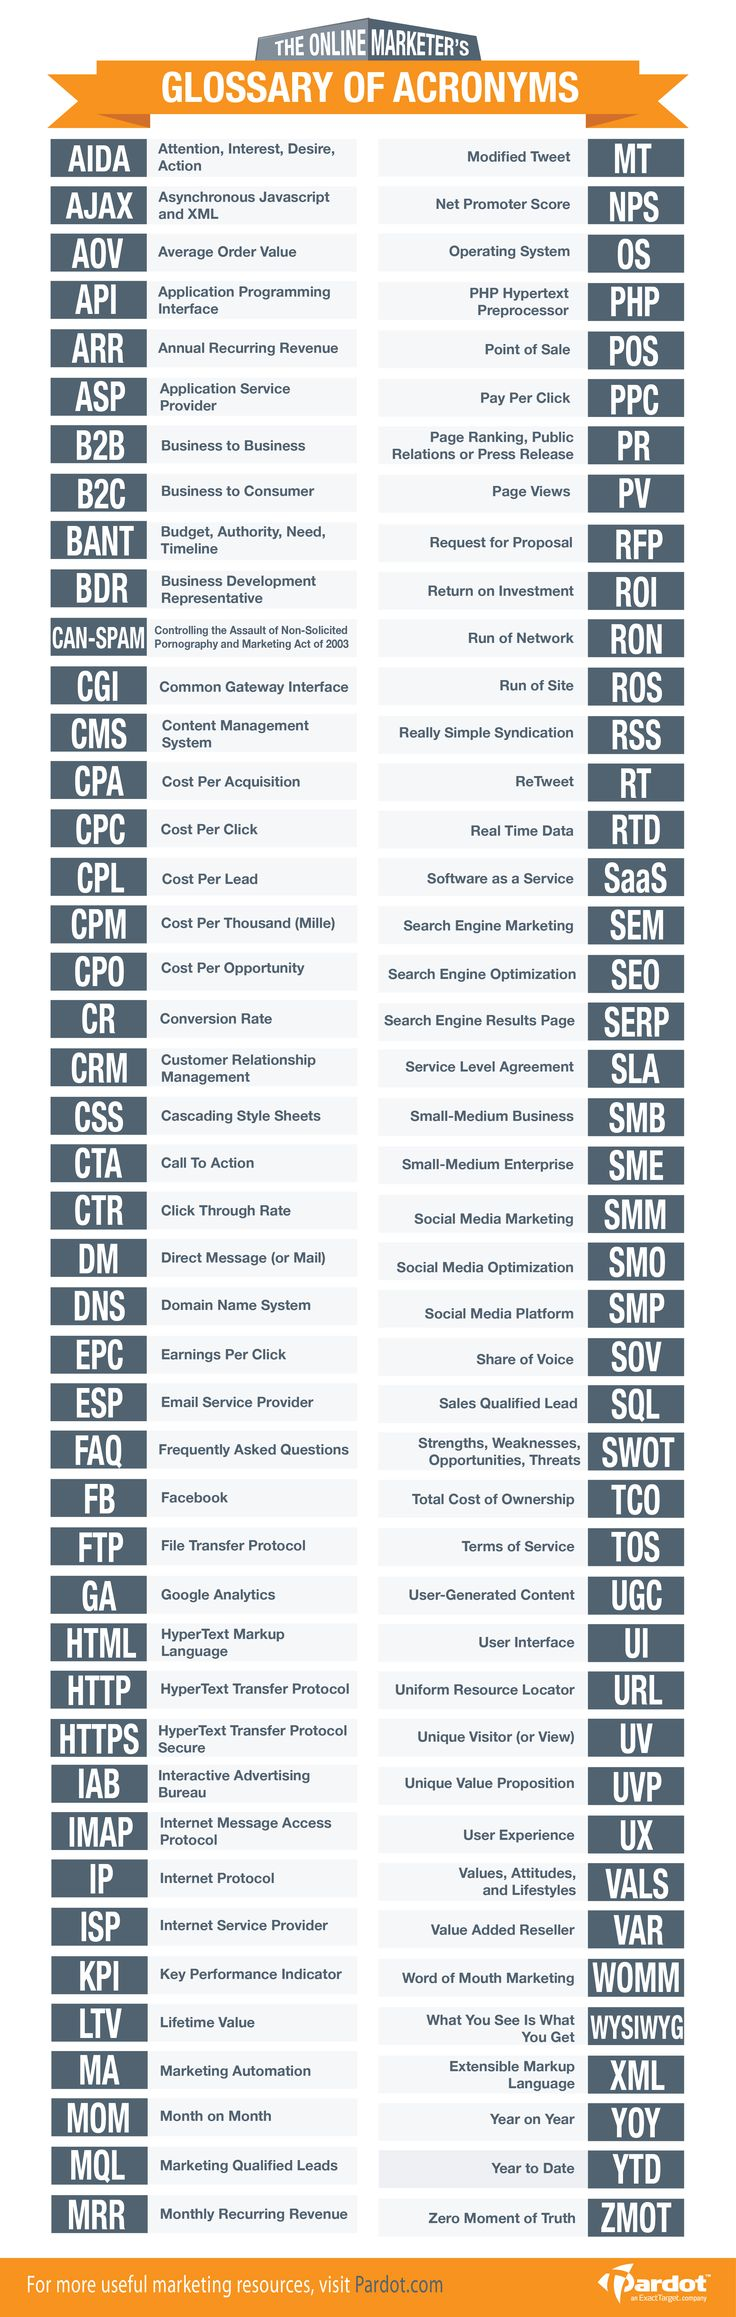 88 Acronyms for Online Marketers